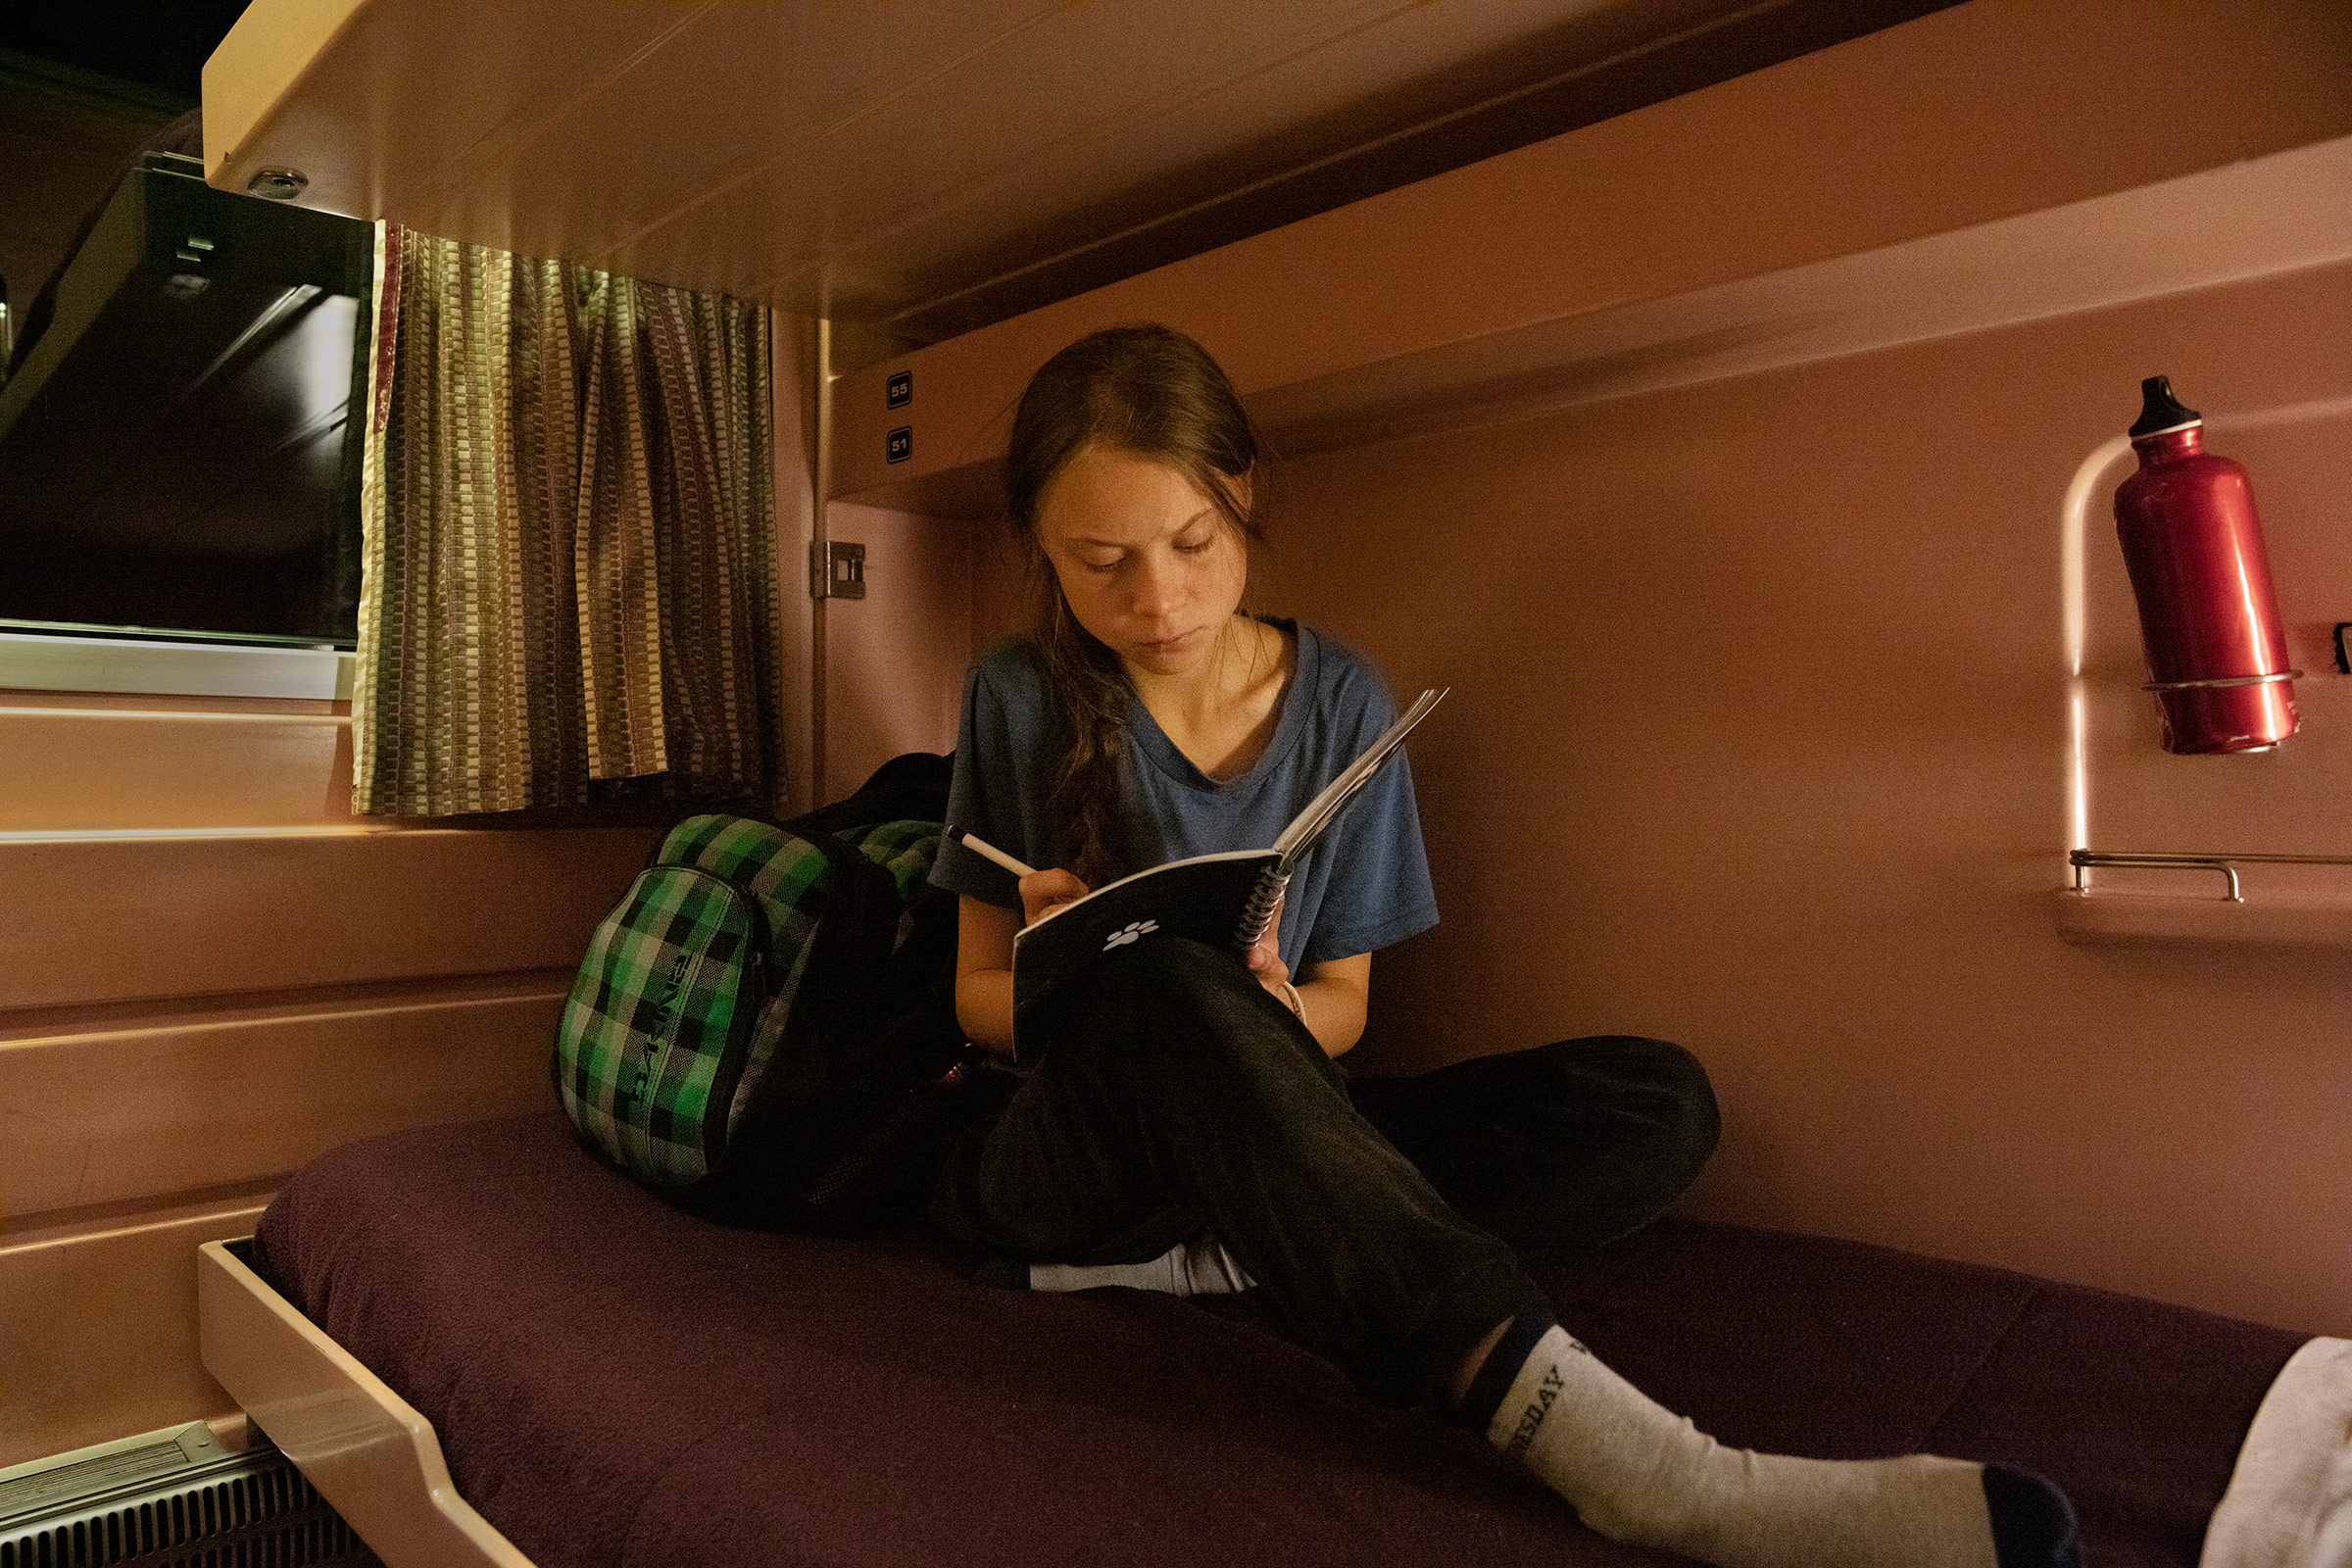 Thunberg writes in her journal on the train as she travels from Lisbon to Madrid for a U.N. climate conference